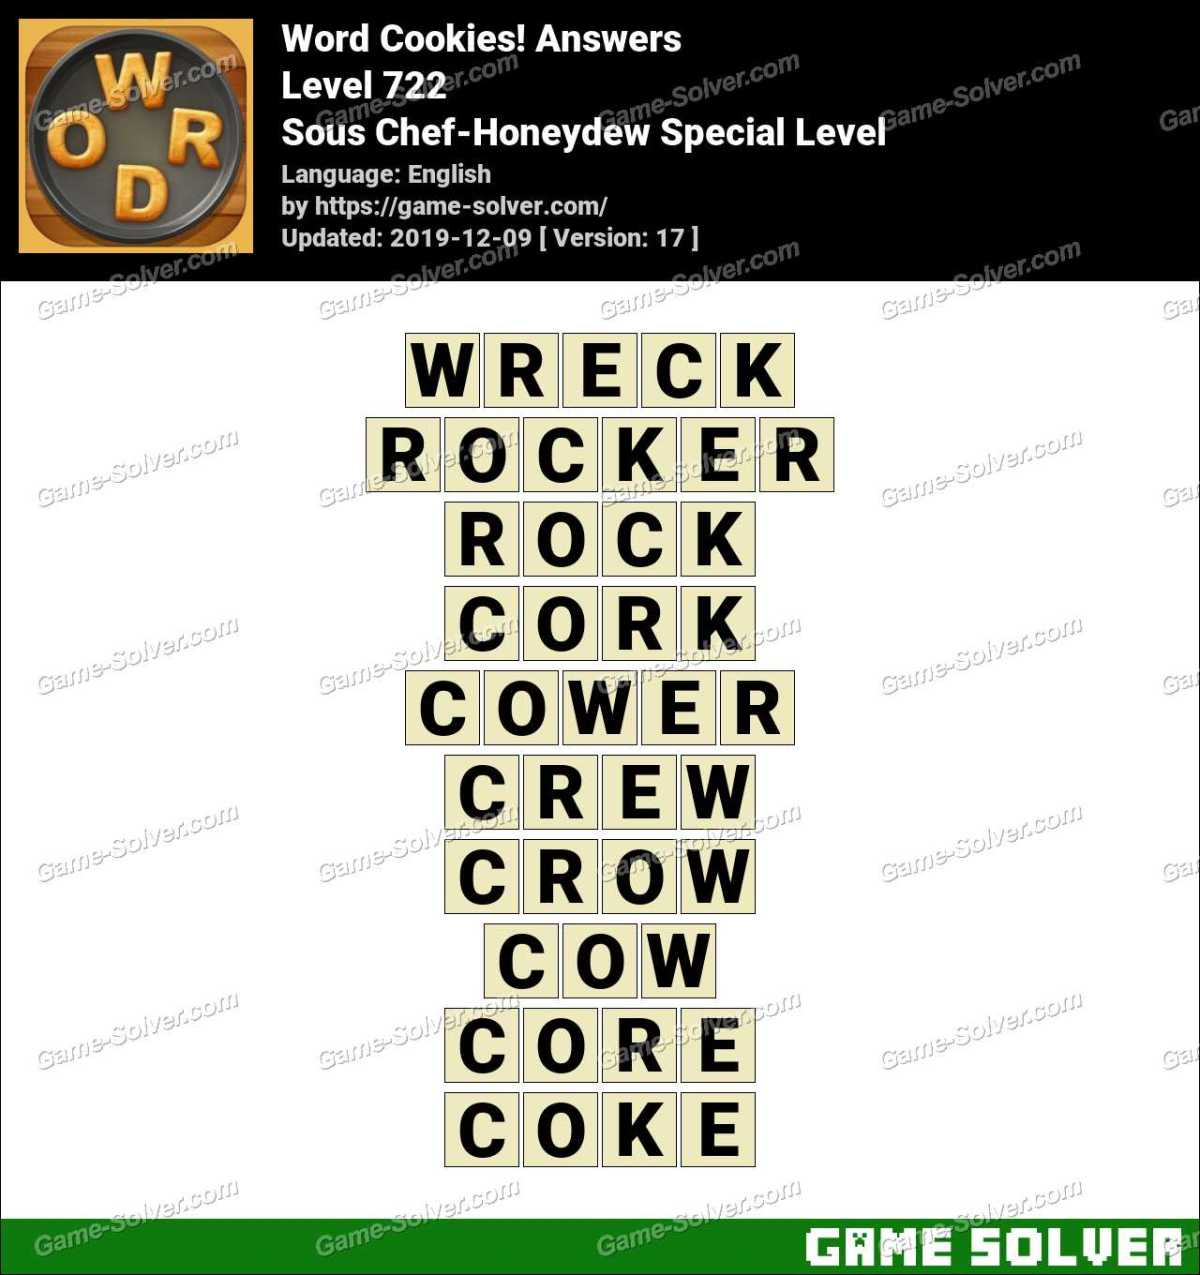 Word Cookies Sous Chef-Honeydew Special Level Answers